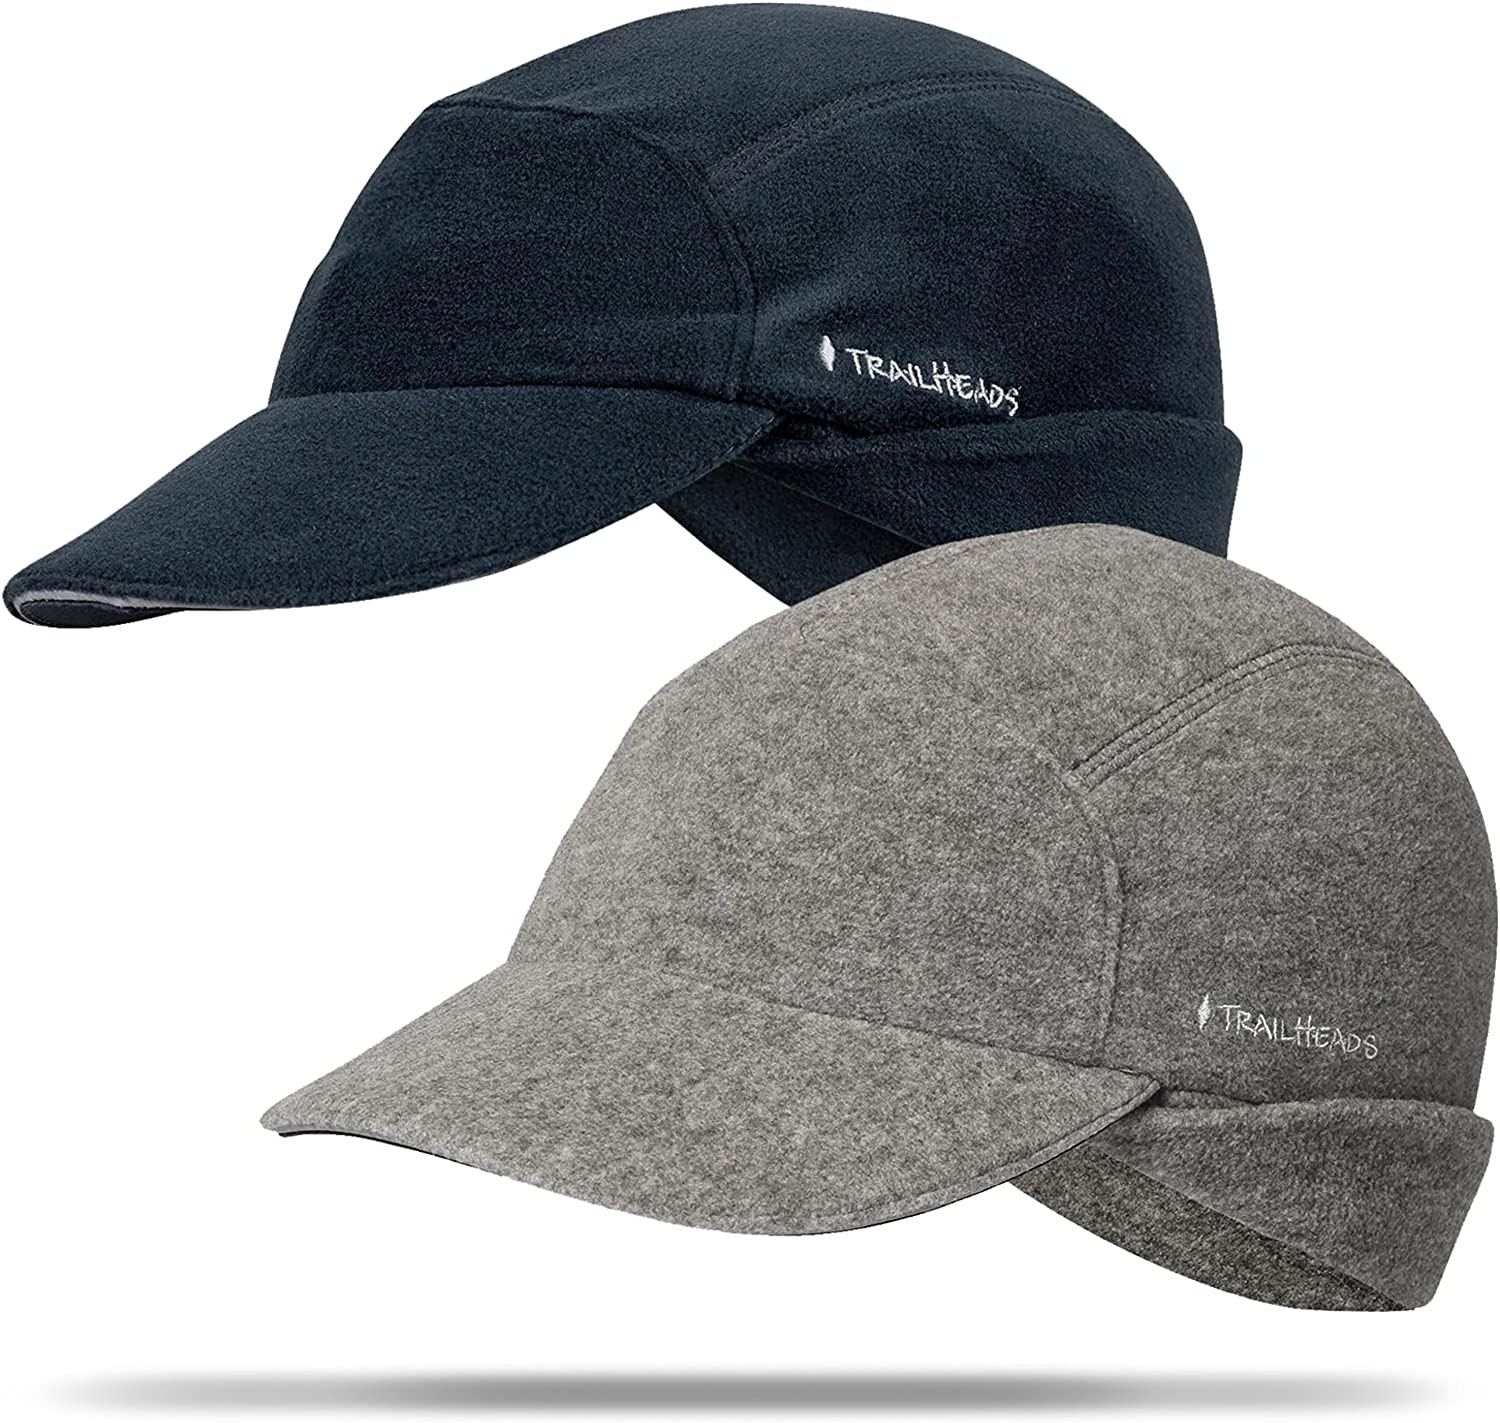 Some reservation TrailHeads Fleece Ponytail Hat Charlotte Mall with Drop Down Warmer Ear T The